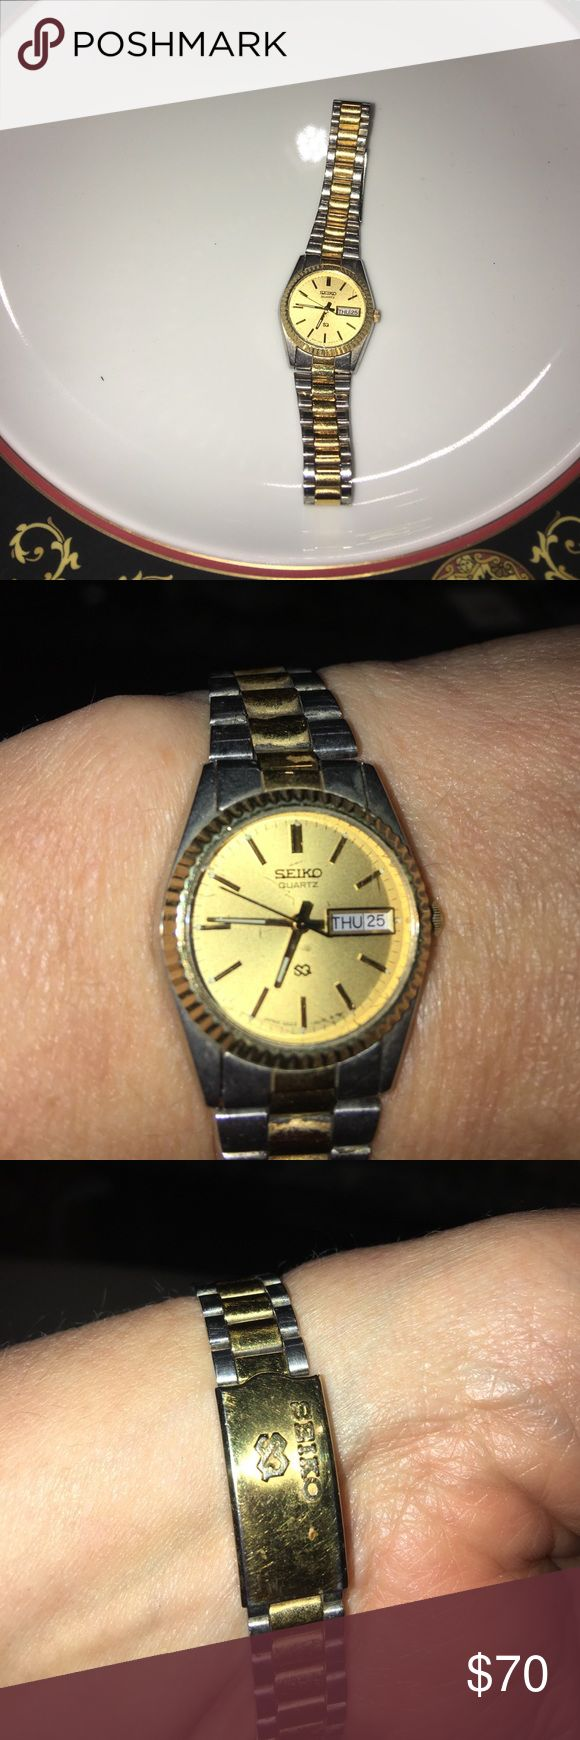 Women's Seiko Watch with Gold Face and Day/Date Women's Seiko Watch in great used condition...needs a battery, and it will be ready to wear...offers always welcome Seiko Accessories Watches